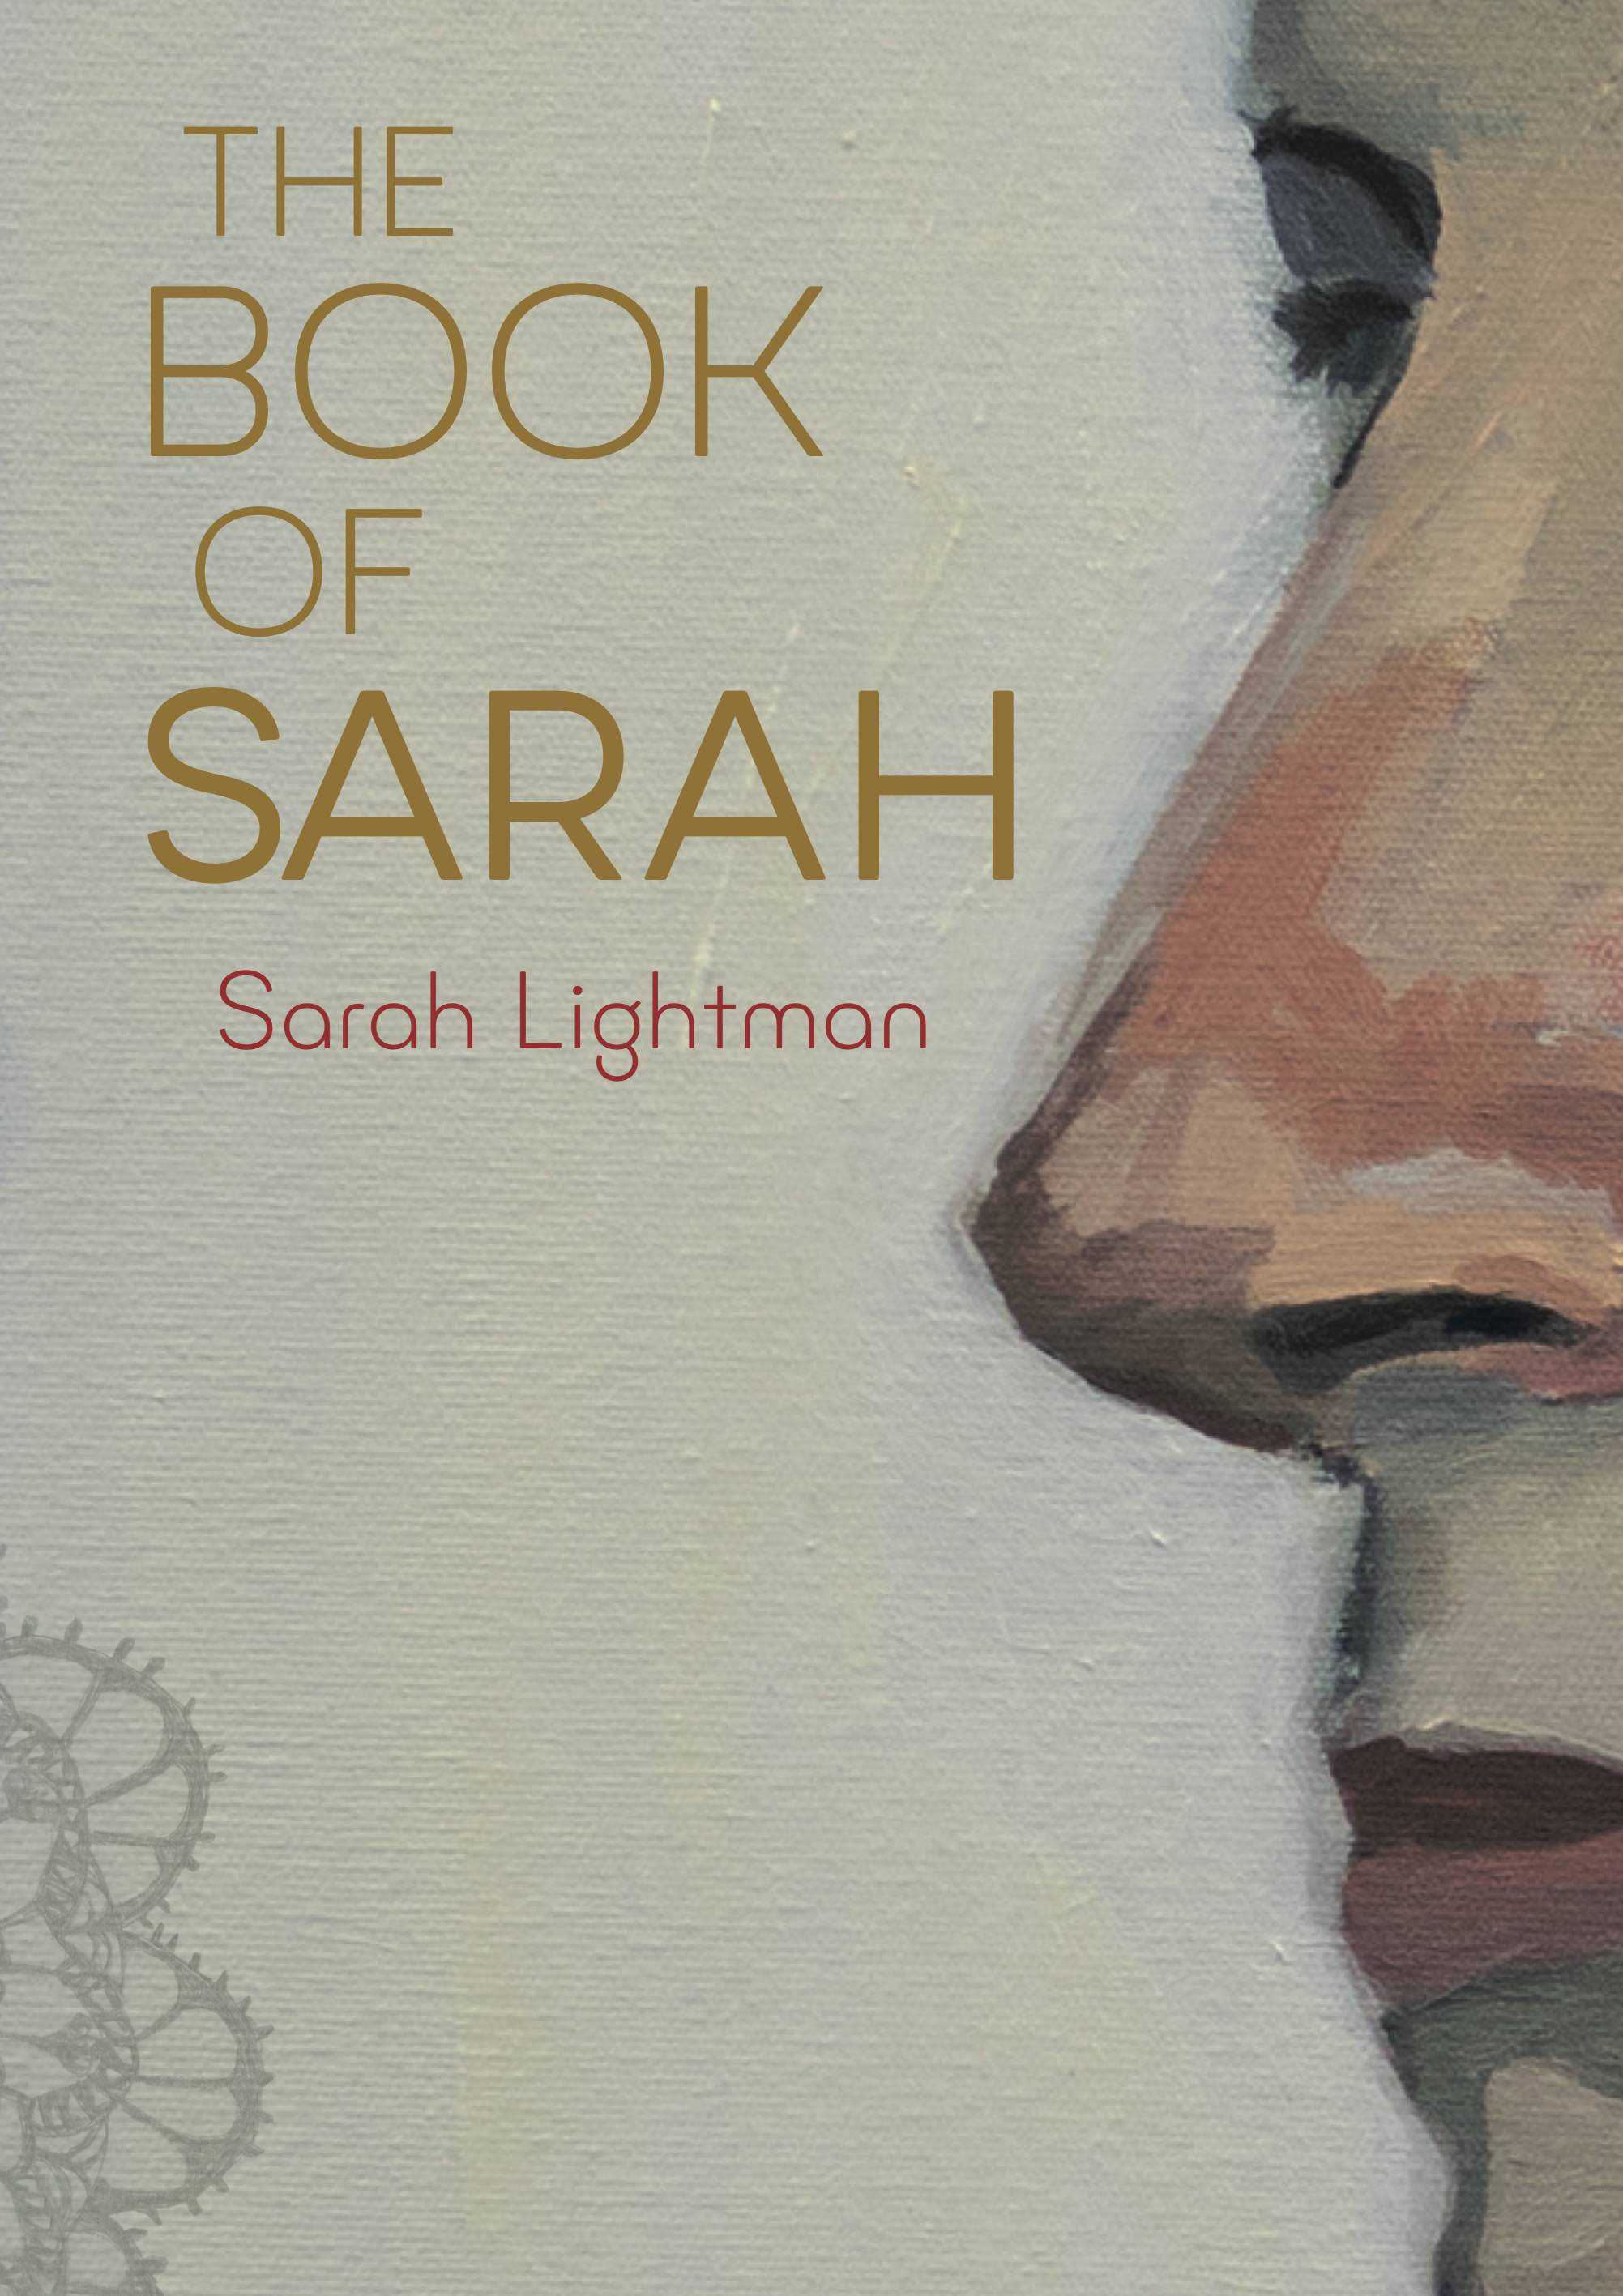 The Book of Sarah:US Edition - Penn State University Press (2019)